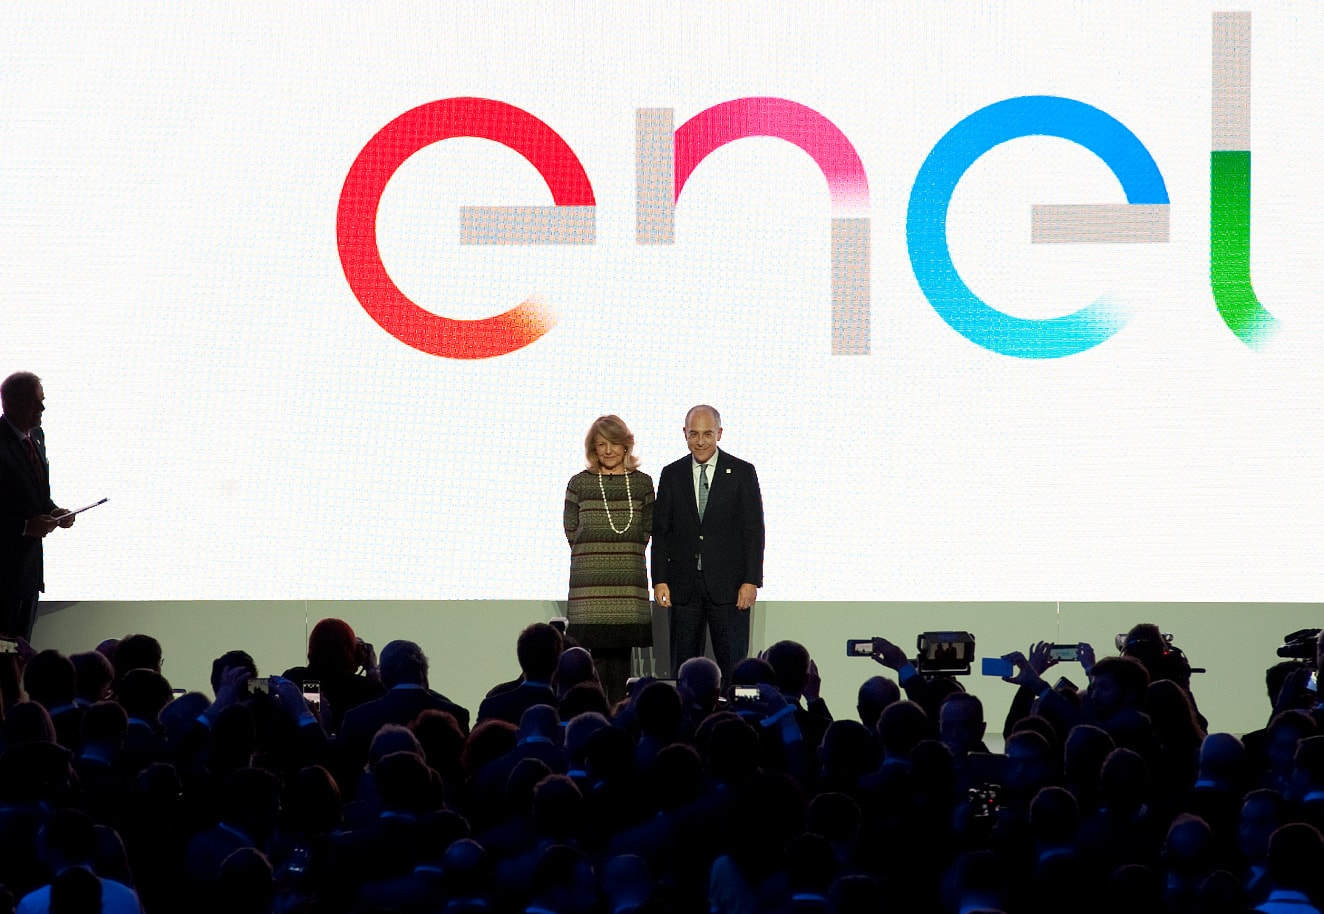 International event management for Enel Open Power Madrid –Luther Dsgn agency